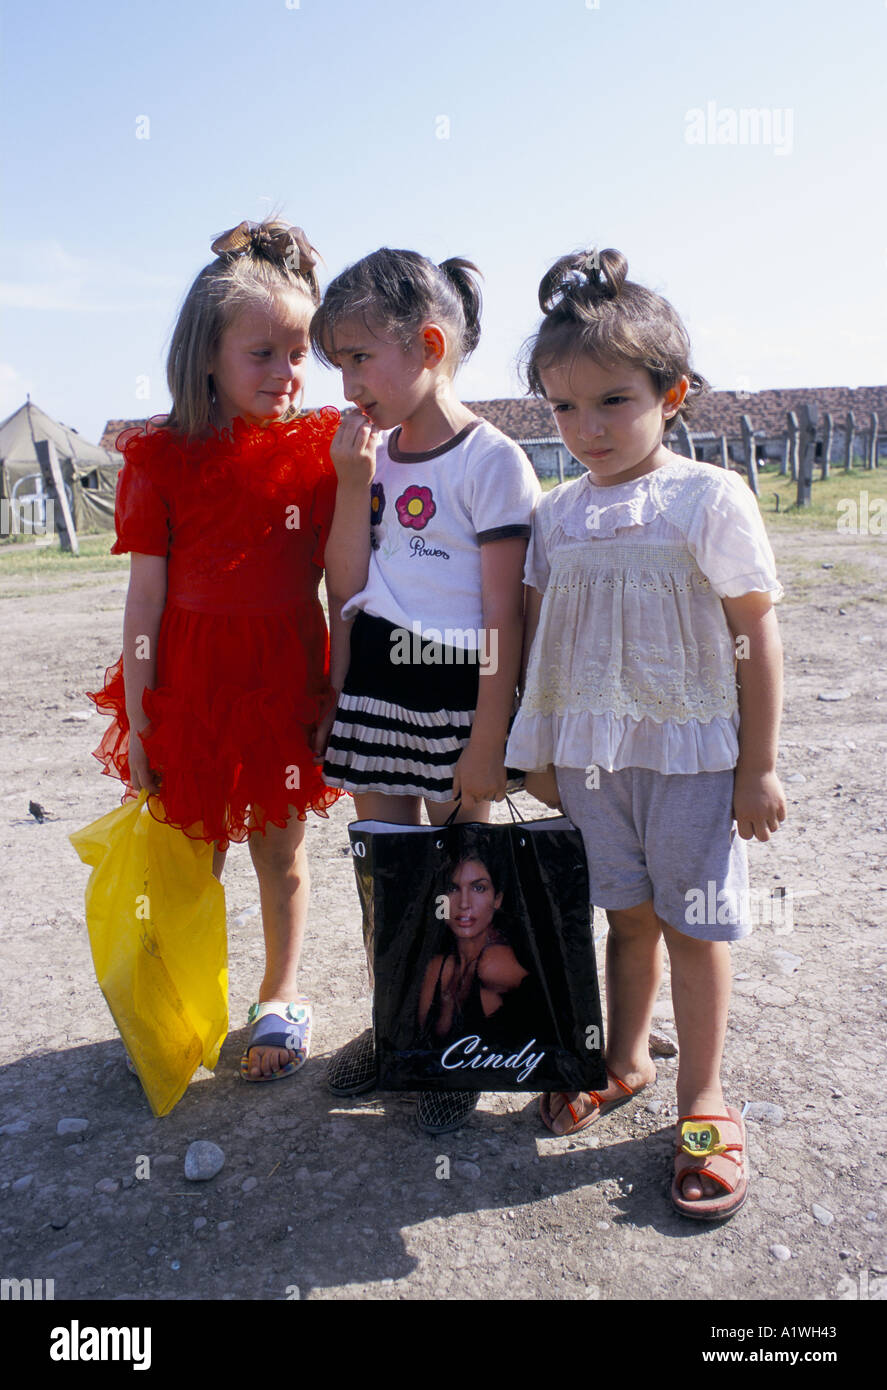 ZURA,DIANA AND ZAIRA,Chechen girls displaced by the war,  Diana holds a carrier bag with Cindy Crawford on it. - Stock Image